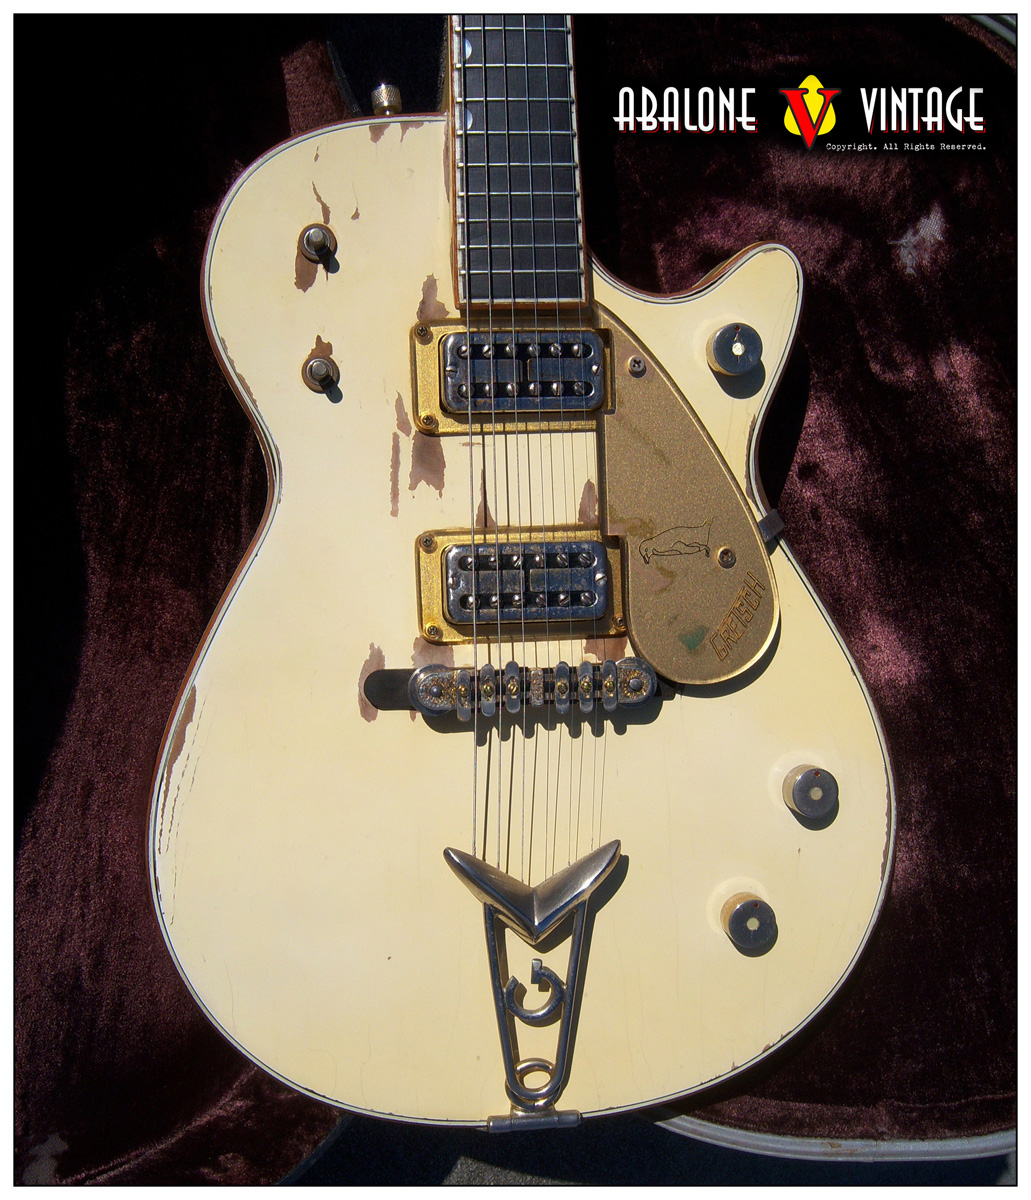 1958 Gretsch White Penguin guitar